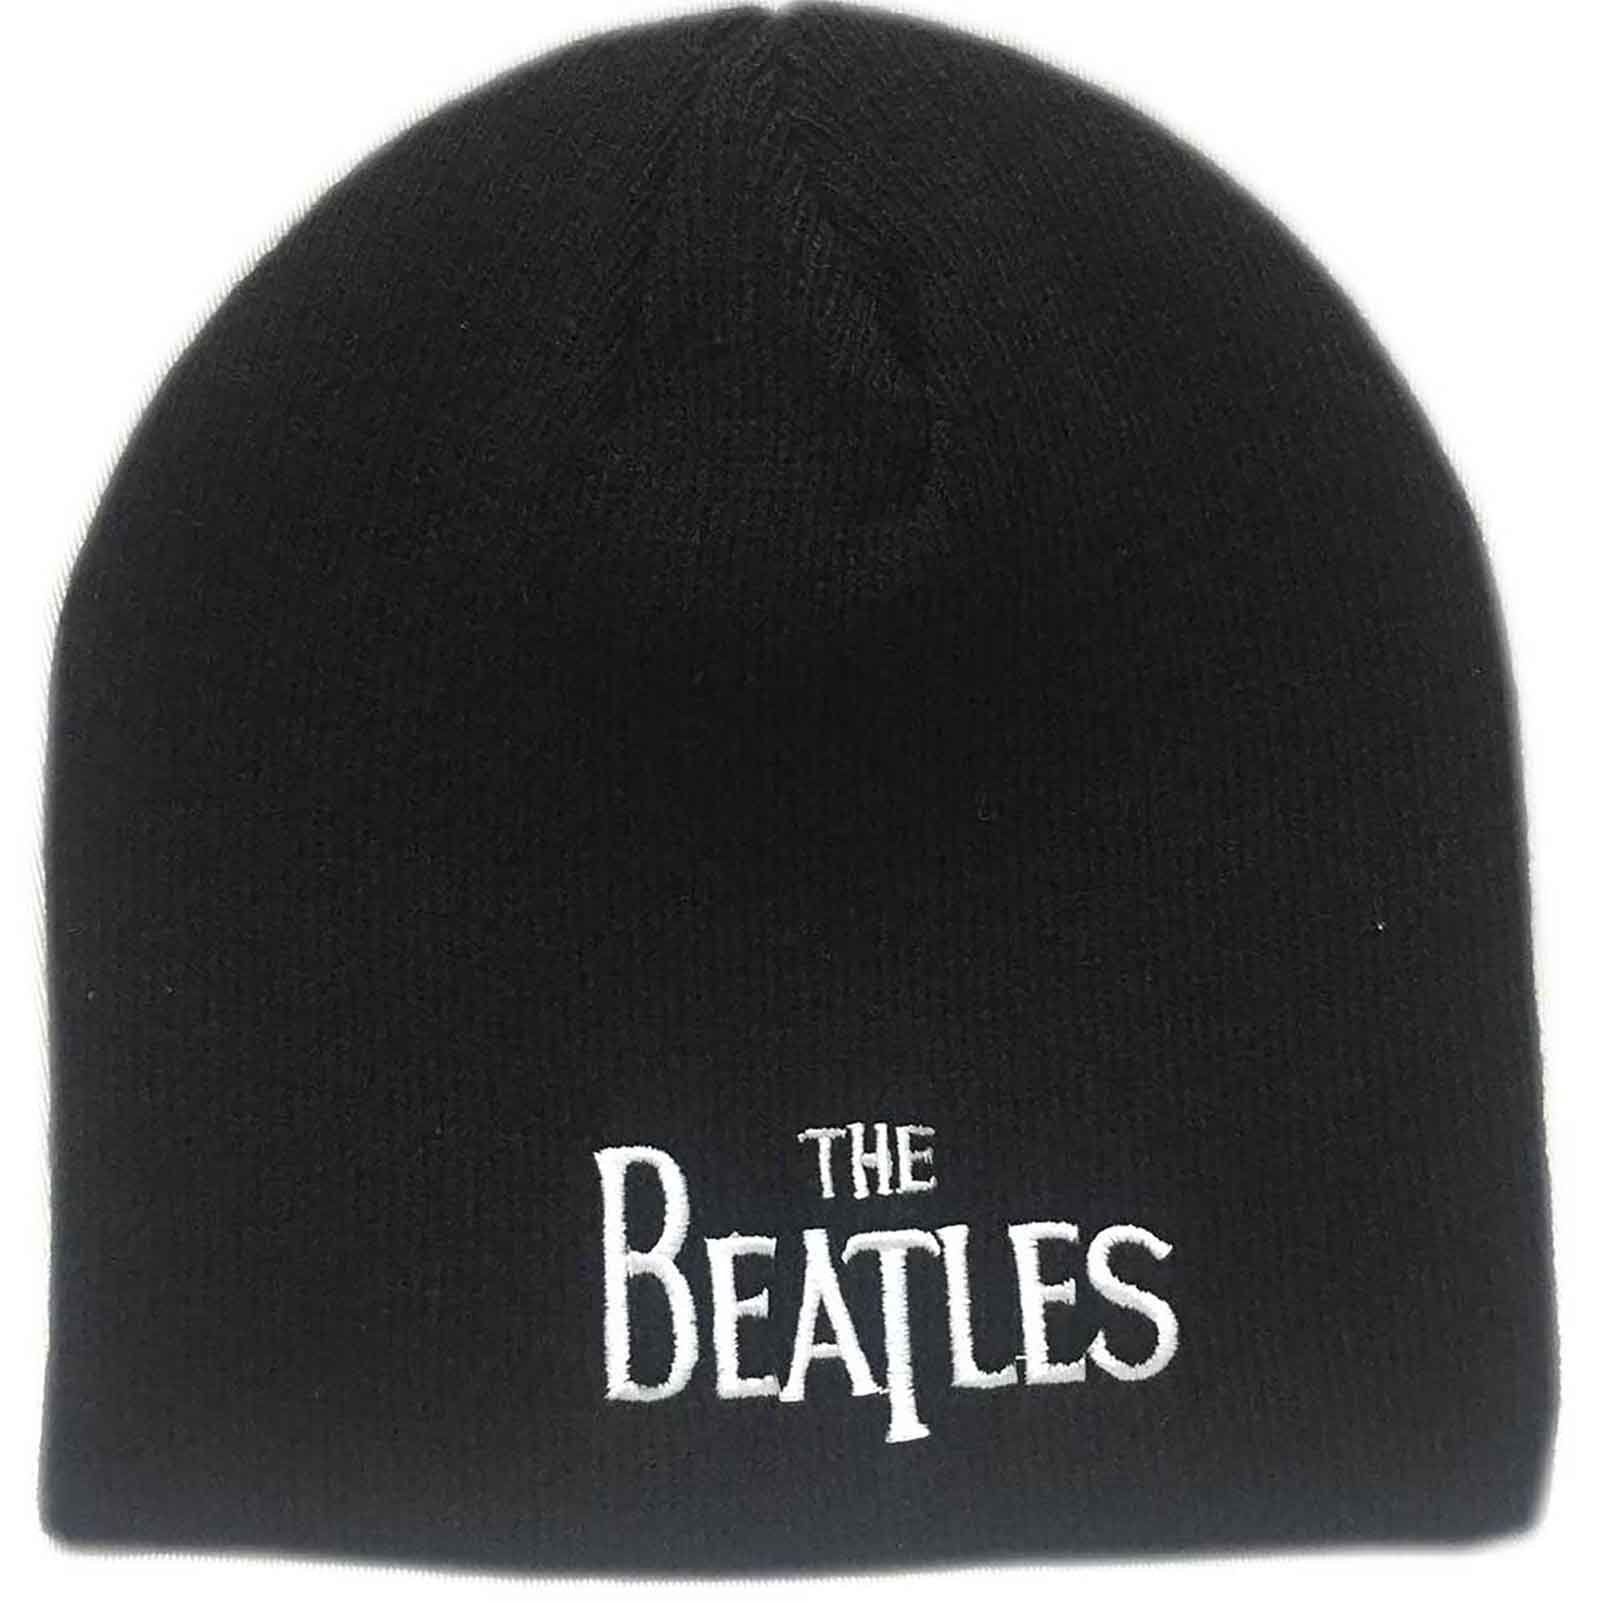 The Beatles Beanie Hat Classic Drop T Band Logo Official Black